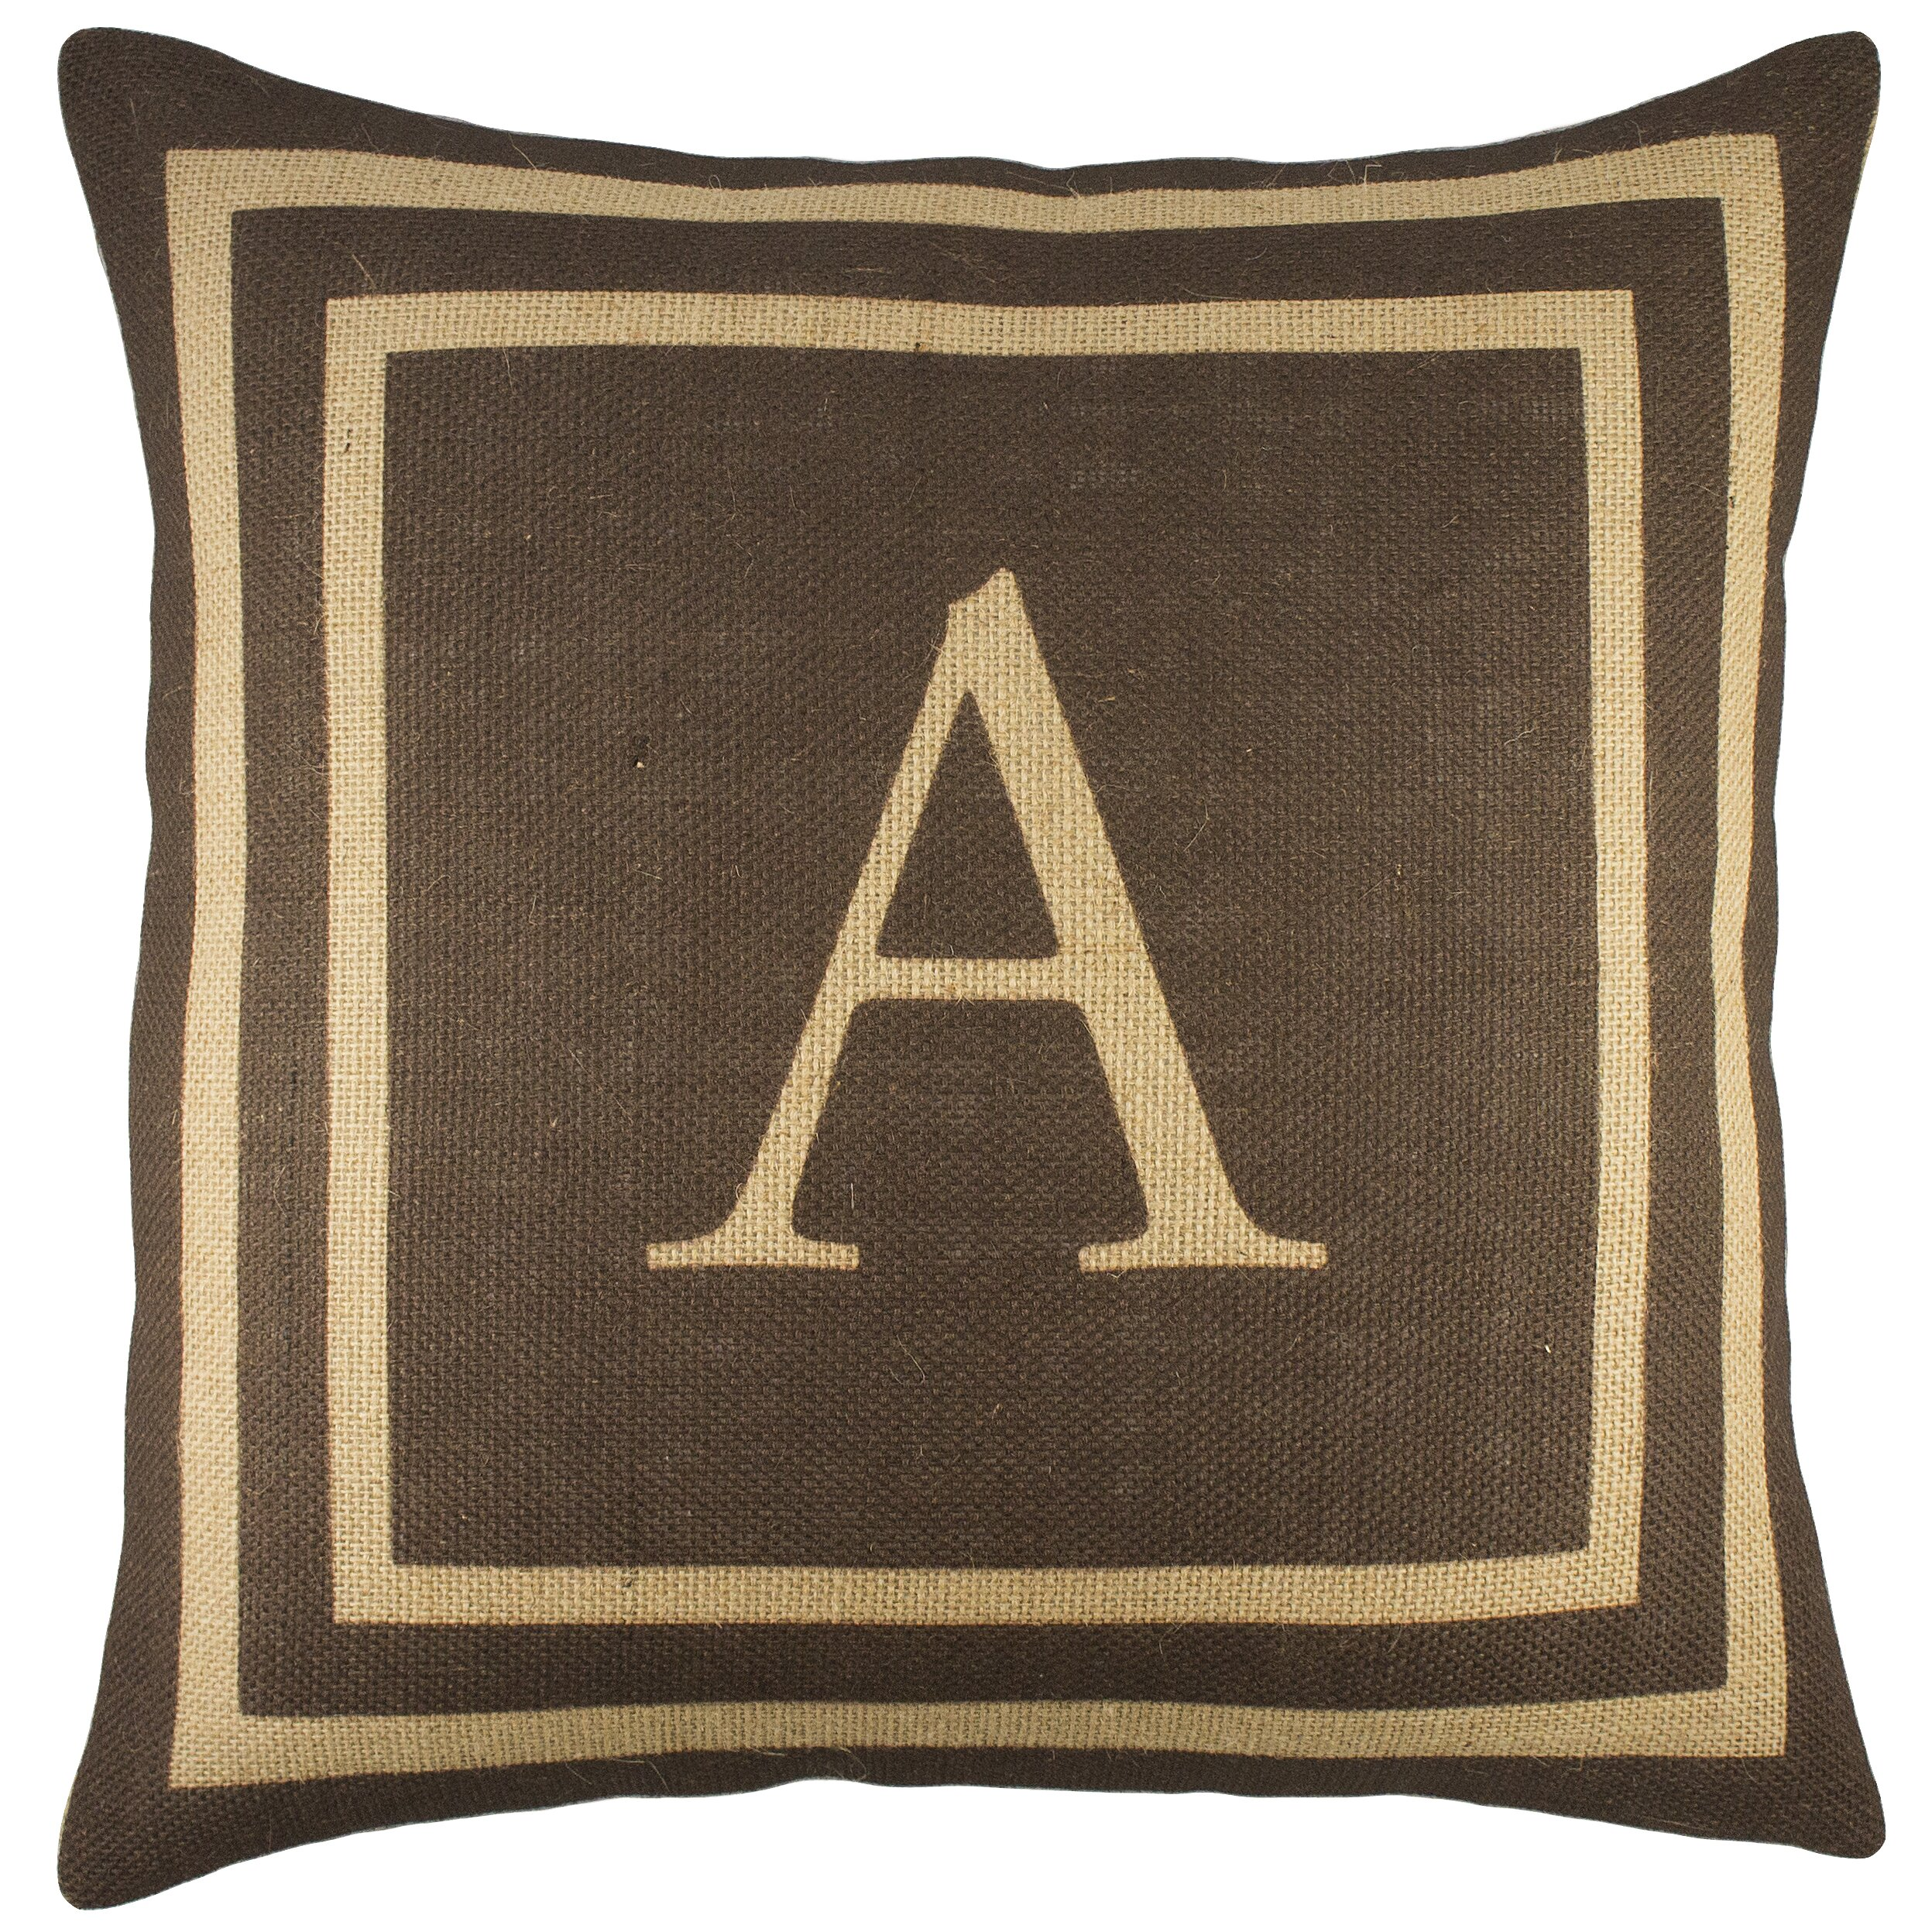 Decorative Pillows With Monogram : TheWatsonShop Monogram Burlap Throw Pillow & Reviews Wayfair